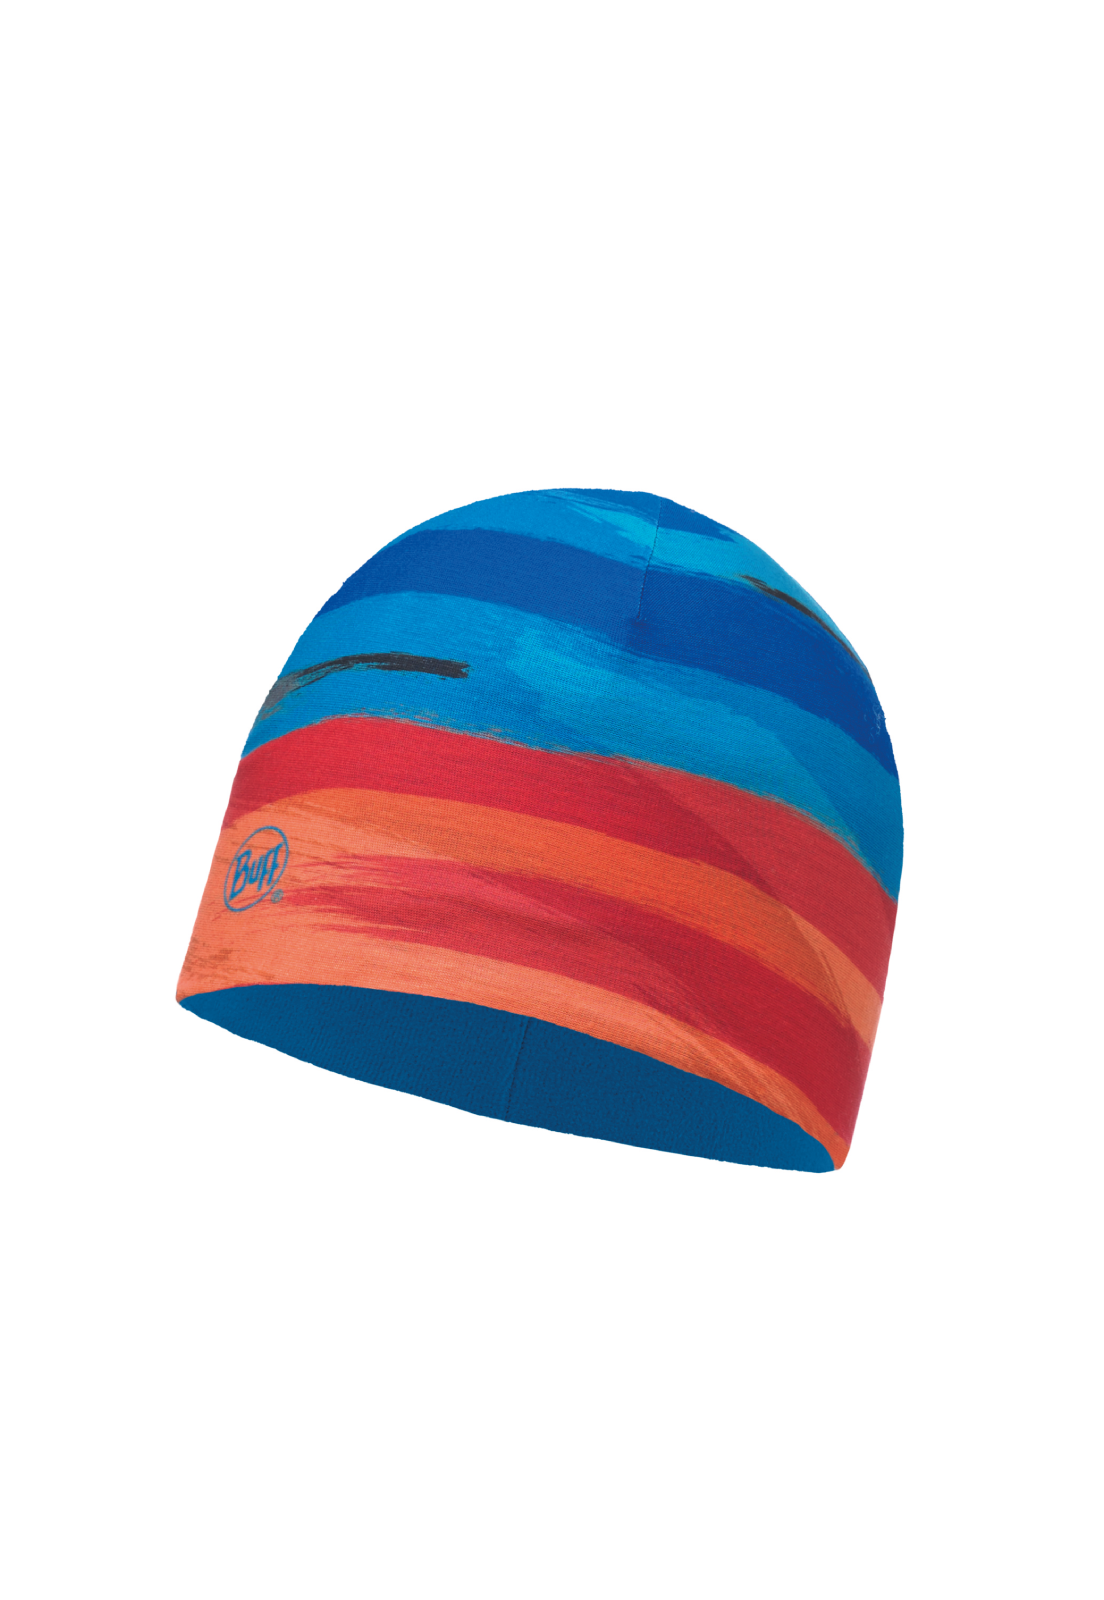 Microfiber & Polar Hat Junior Graze Multi / Harbor